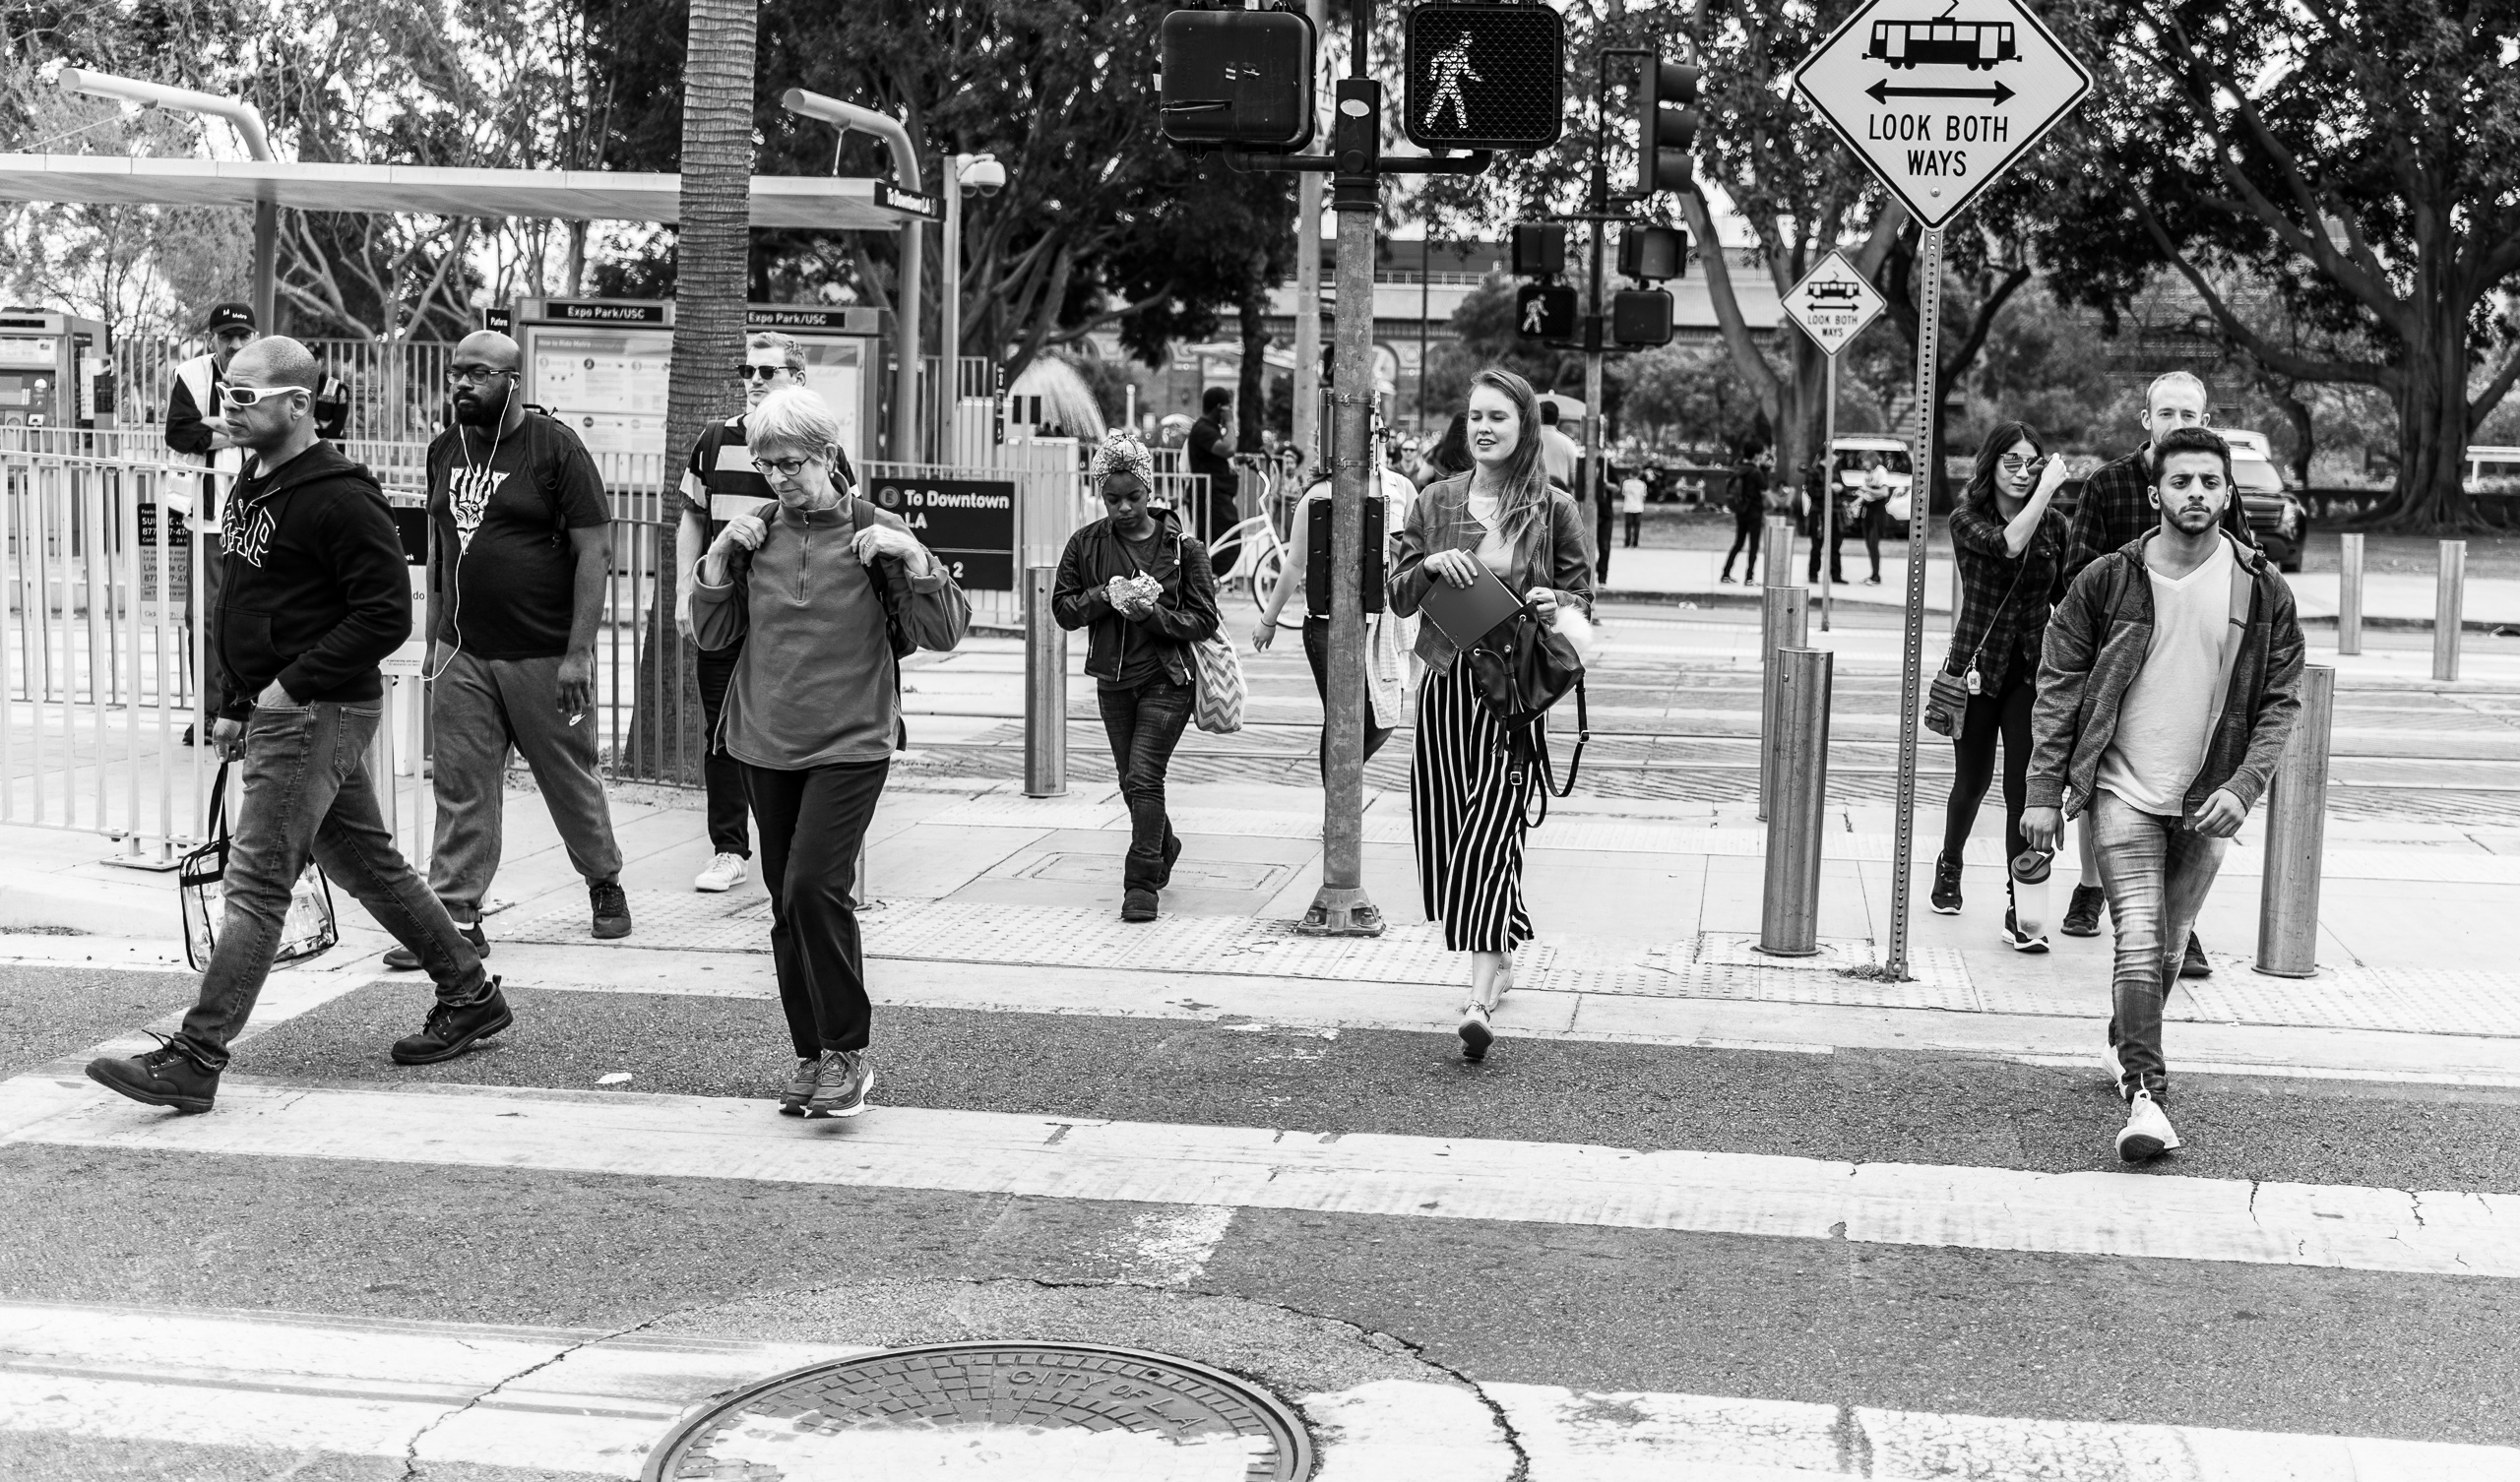 people crossing Exposition Blvd from The Museums and Metro toward the campus of USC and the Festival of Books